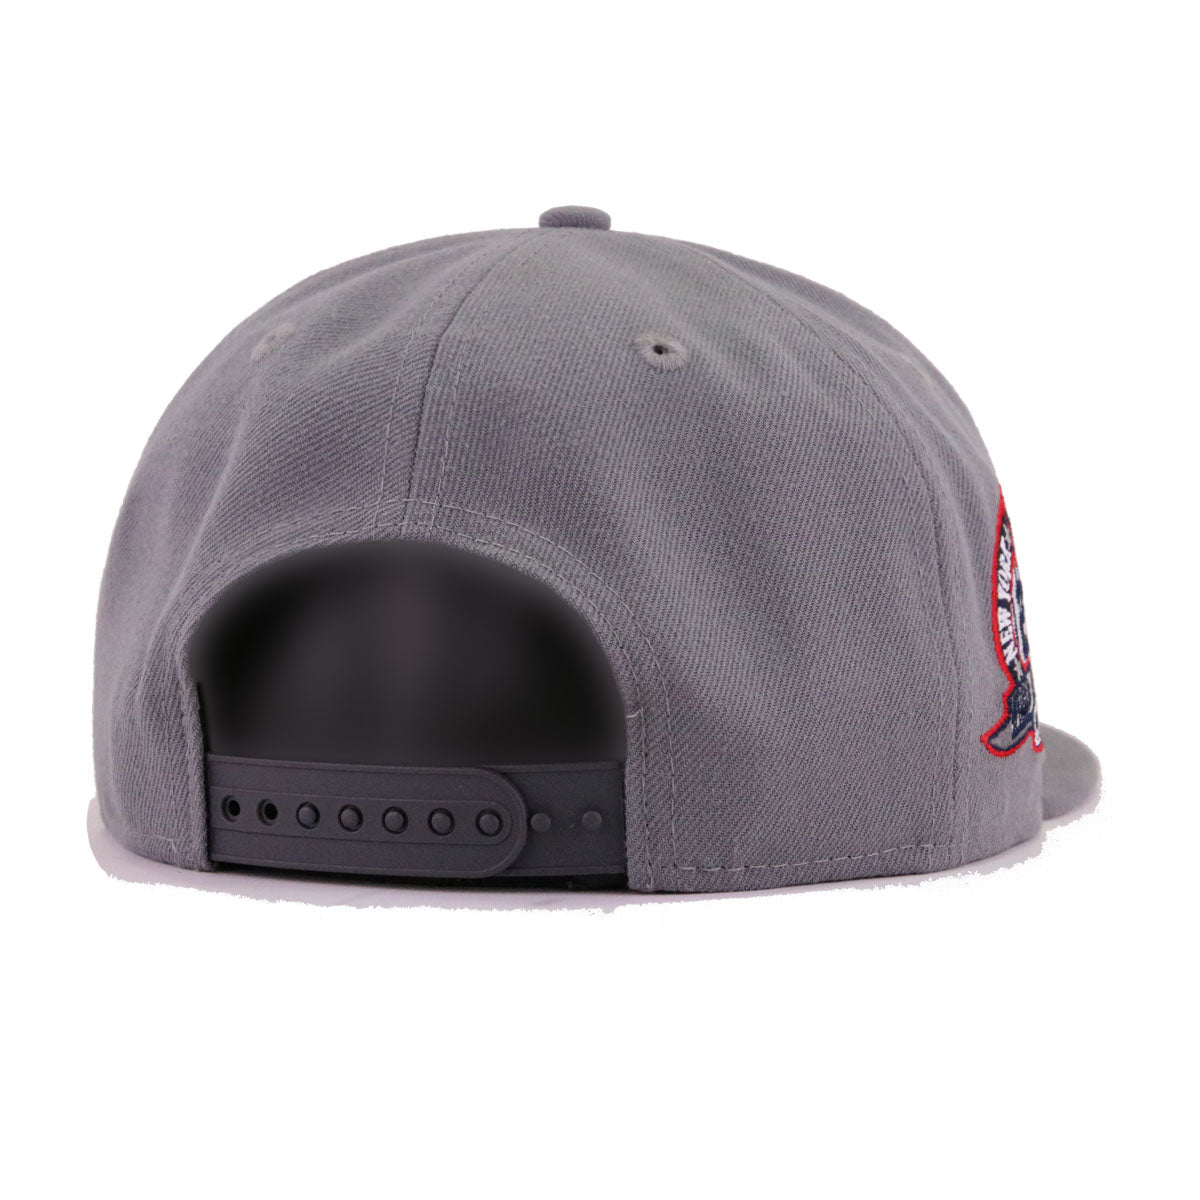 New York Yankees Storm Grey Tophat New Era 9Fifty Snapback